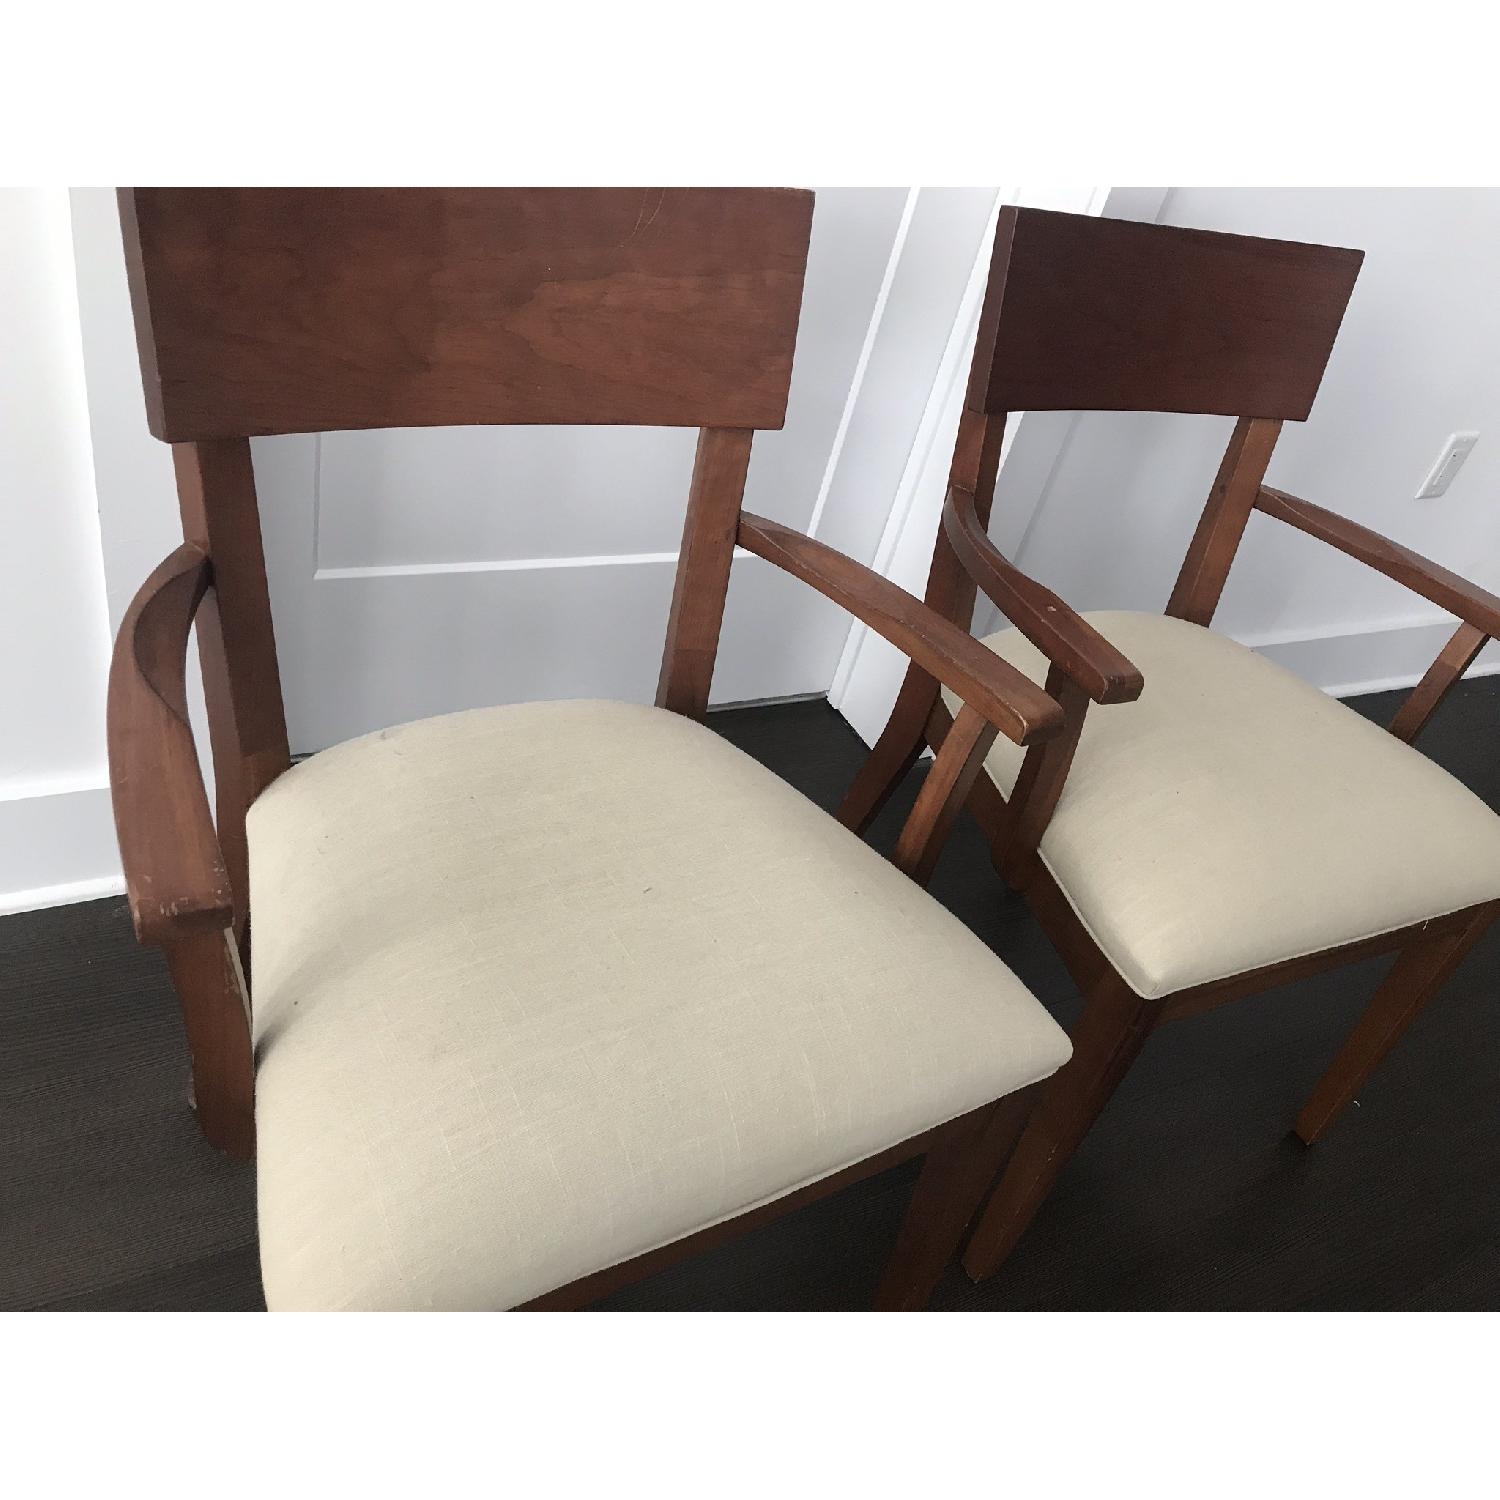 Ethan Allen Dining Armchairs - image-2